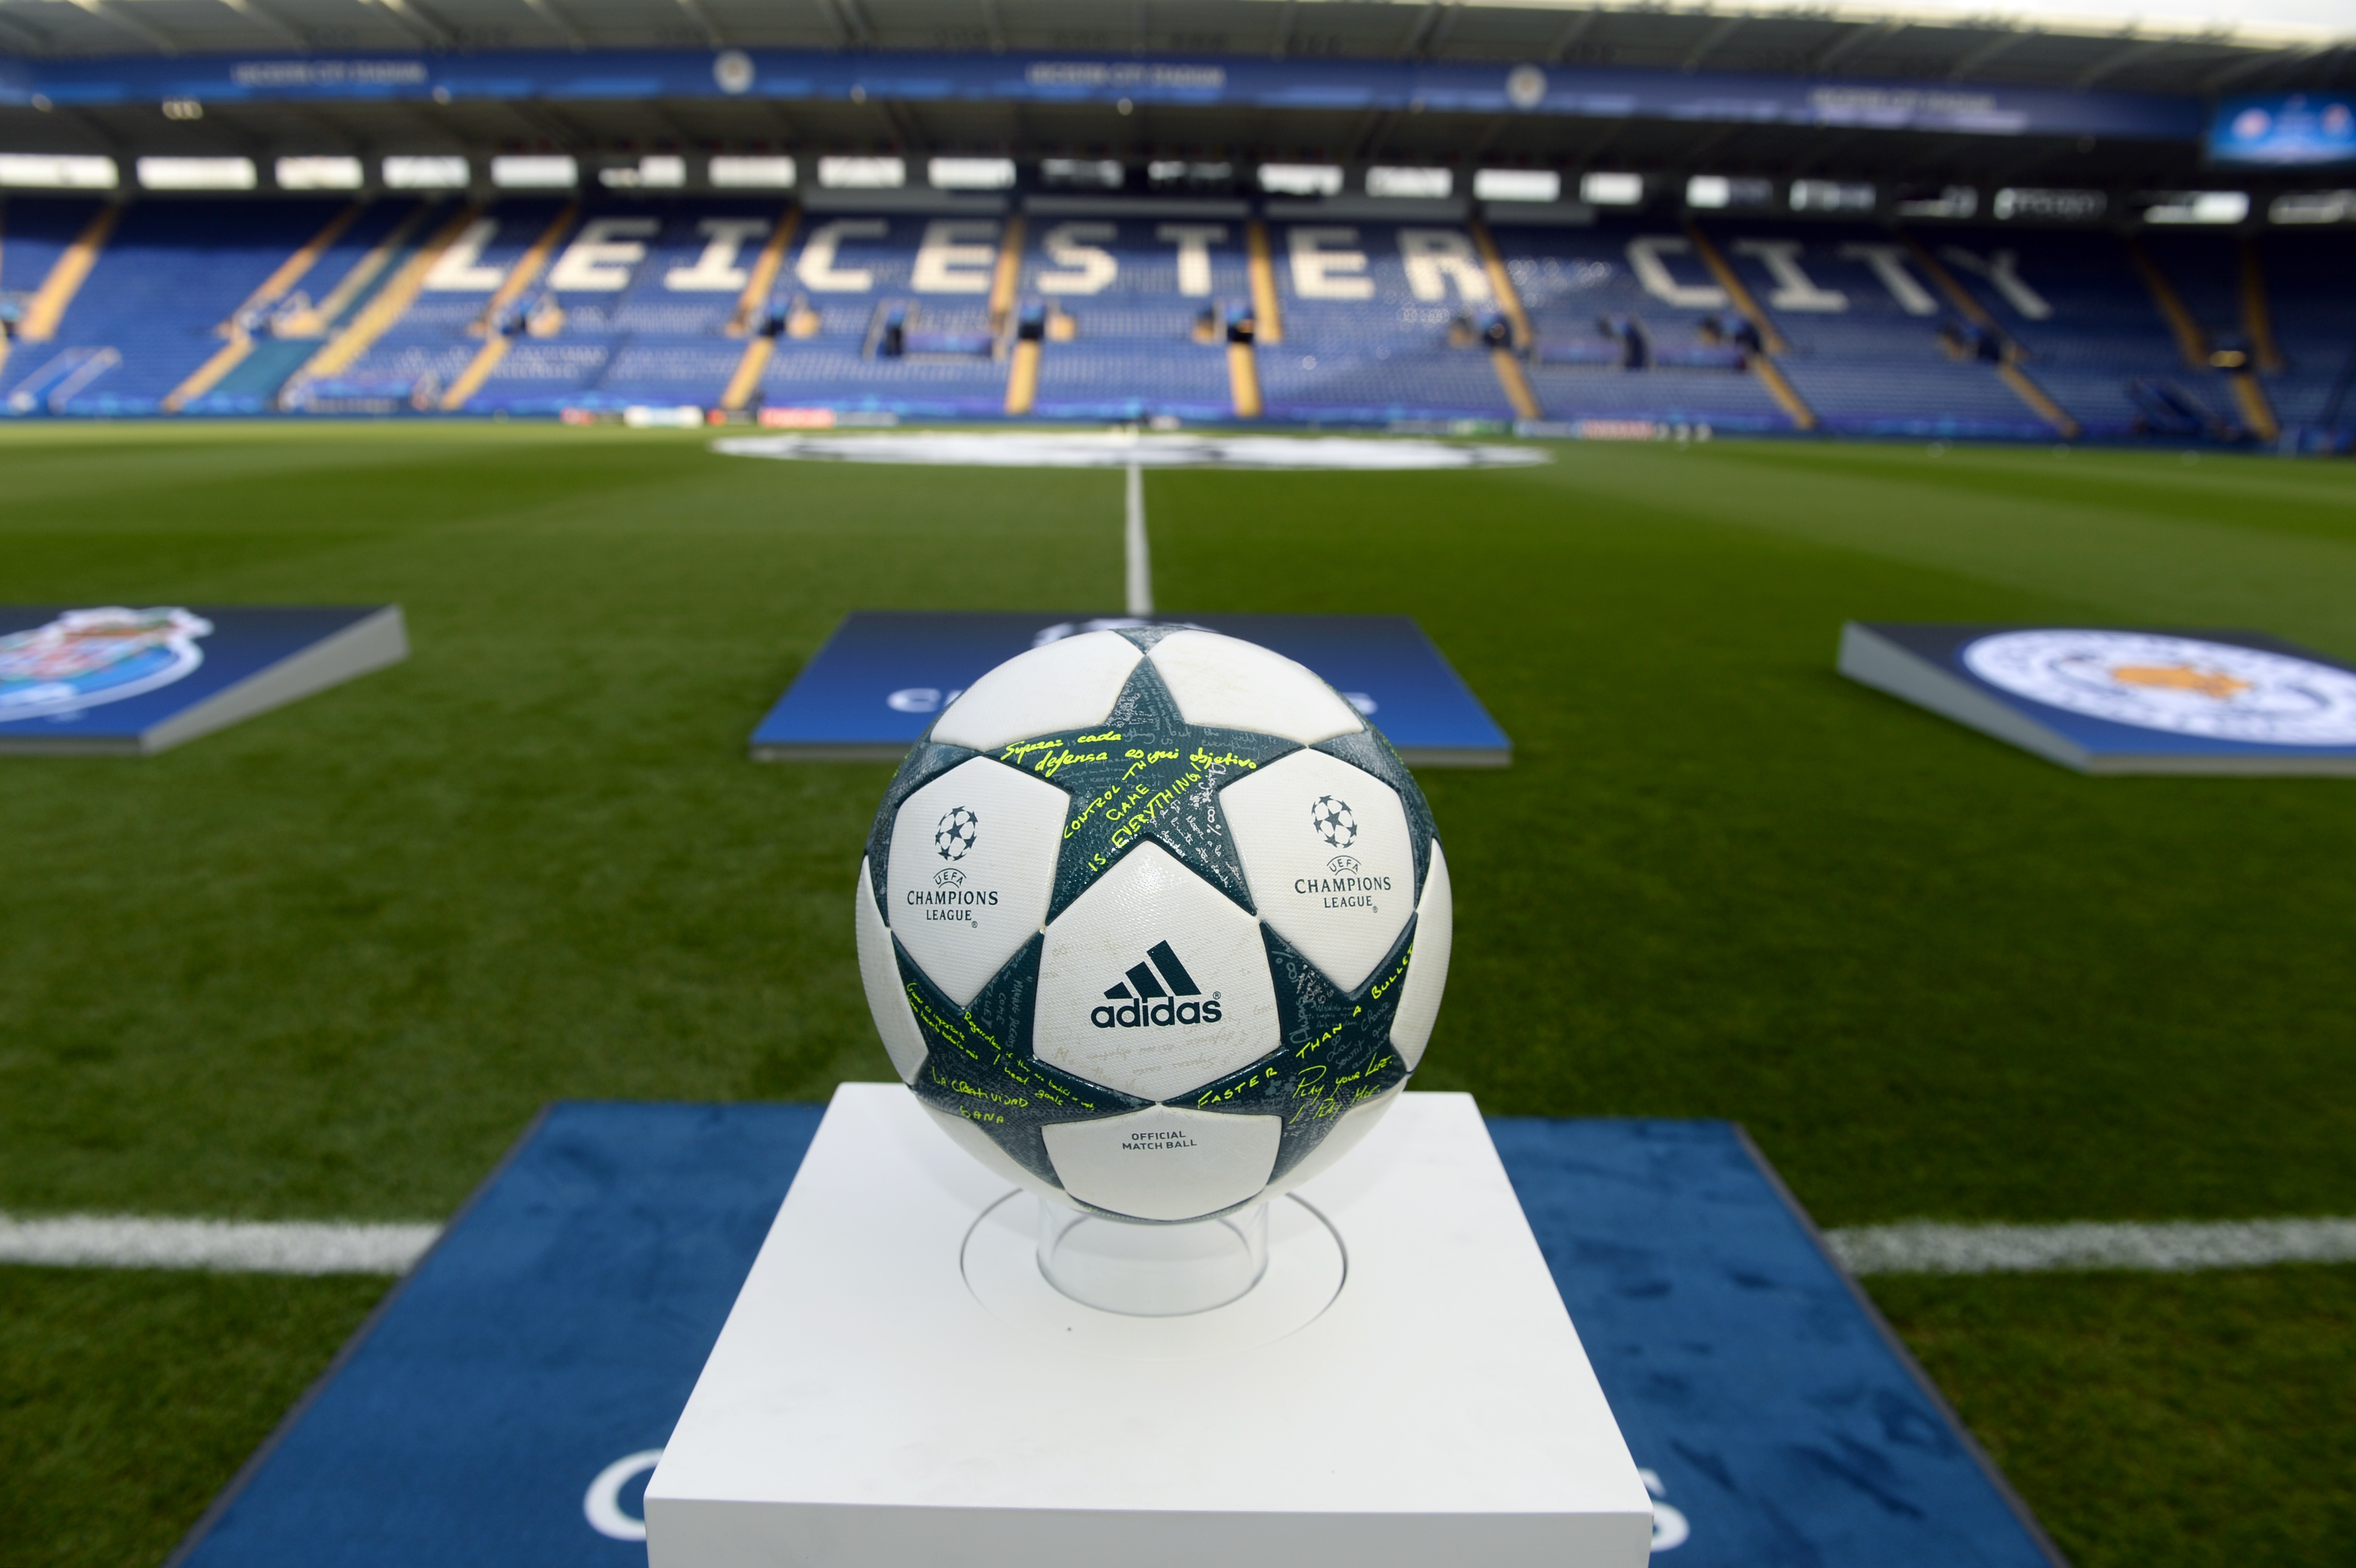 A Champions League football resting on a pedastal within an empty stadium.